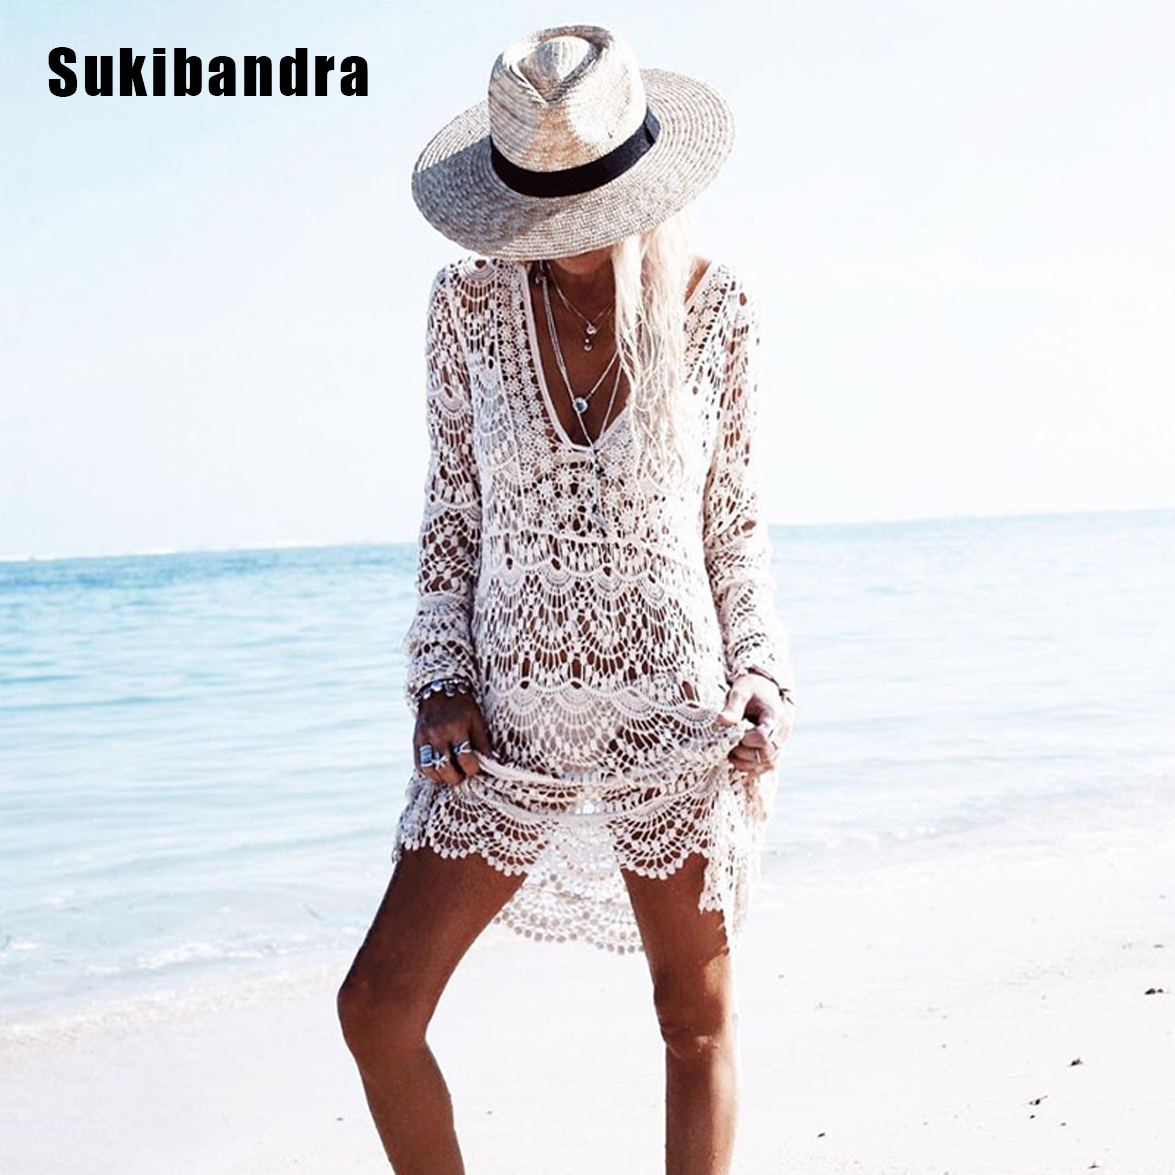 Candid Summer Women Sexy Clothing Tassel Hollow Crochet Blouse Lady Cover-ups Translucent Beach Wear Tops Women's Clothing